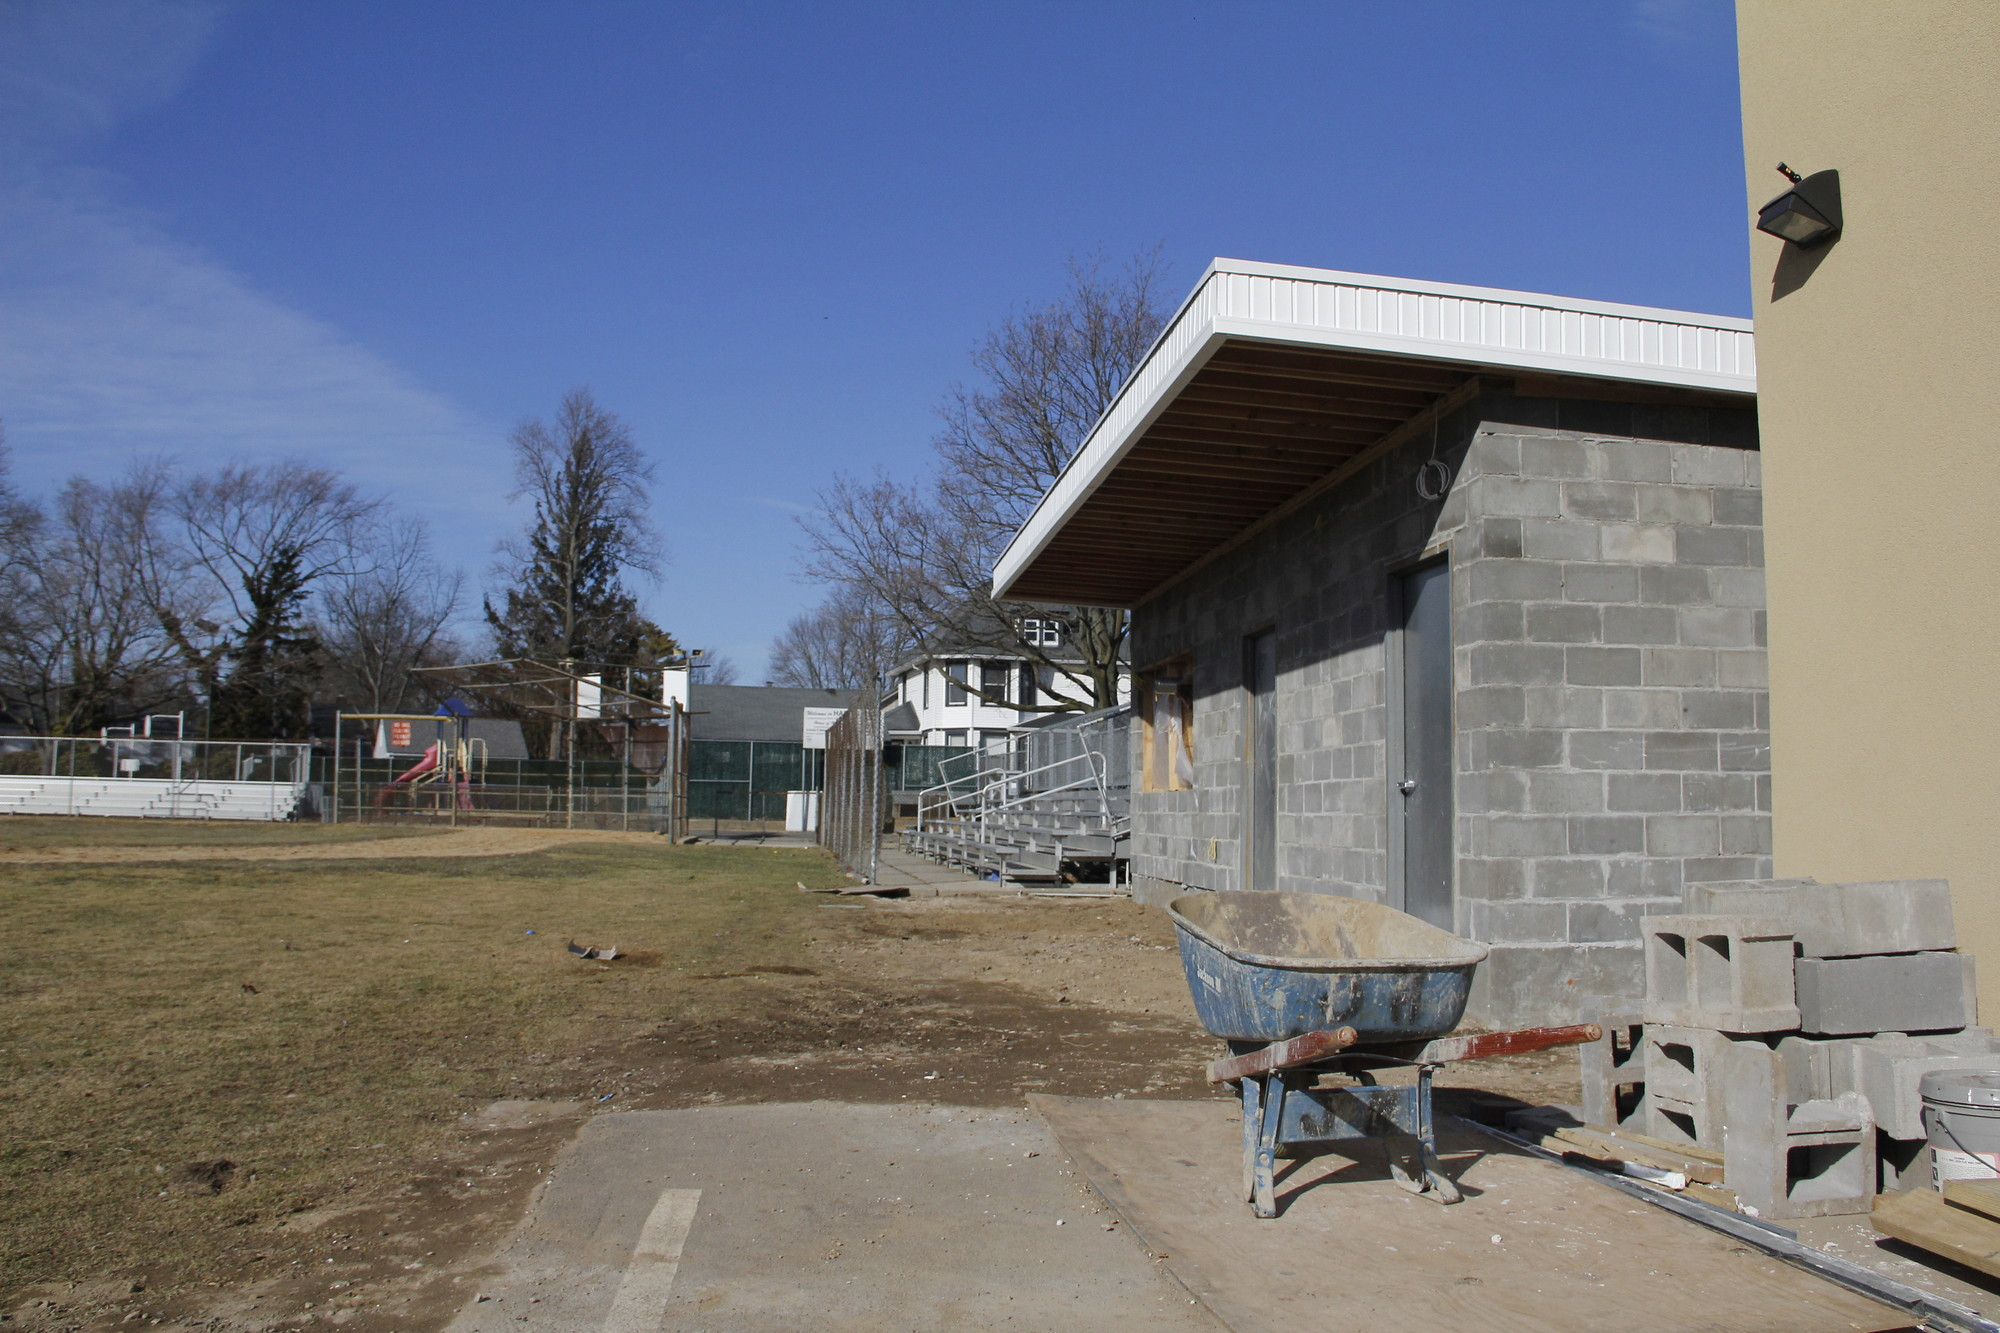 The Malverne Little League will unveil its new concession stand, complete with handicap accessible bathrooms, at this year�s Opening Day ceremony on April 19 at Harris Field.